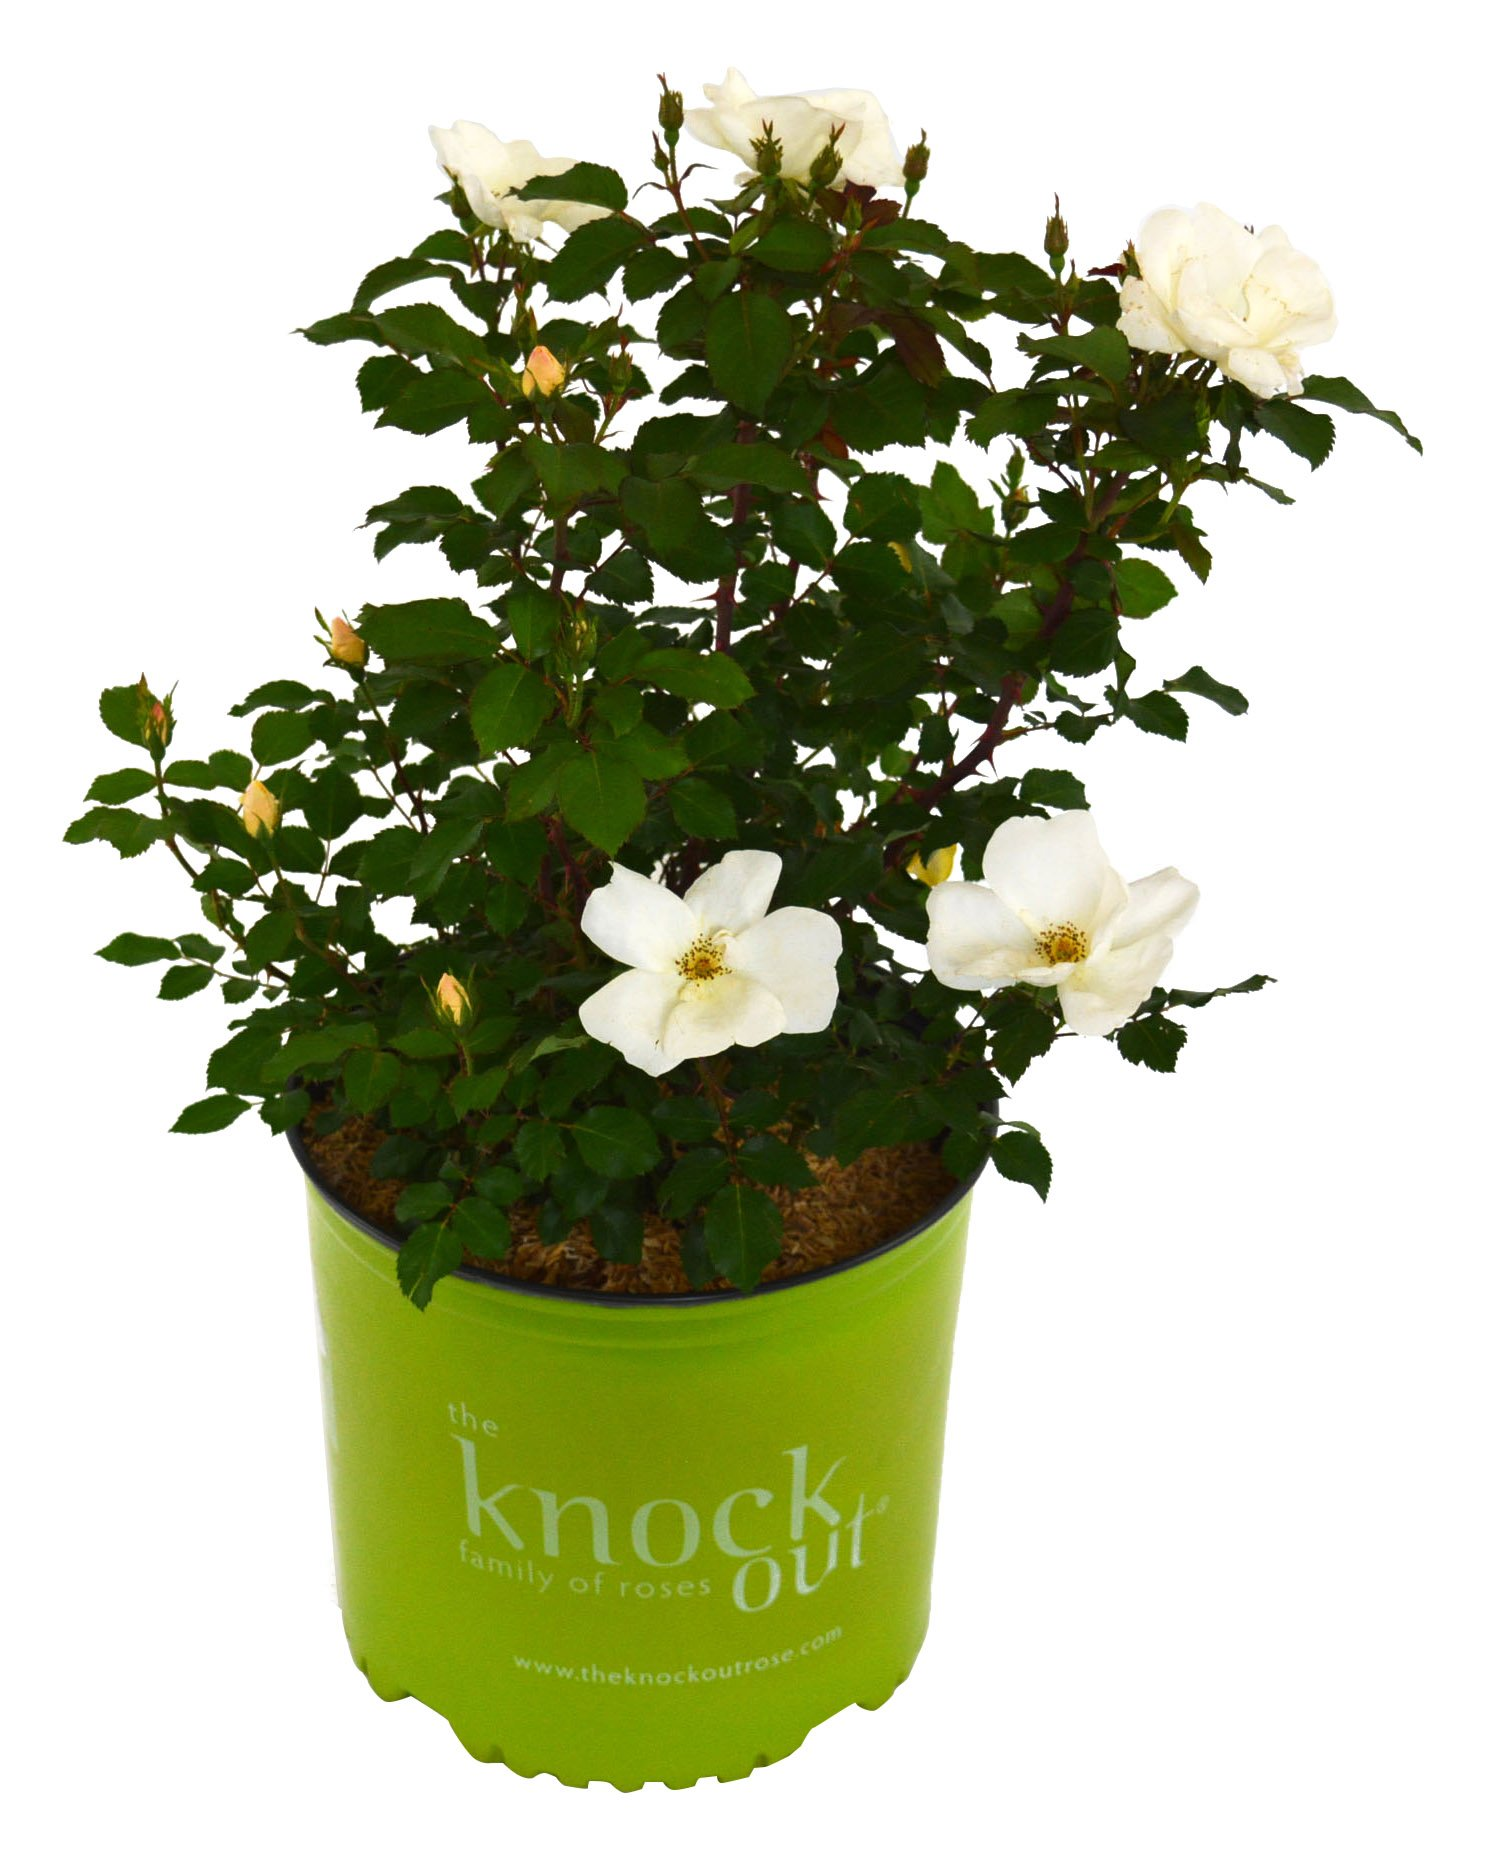 Knock Out Roses - Rosa White Knock Out (Rose) Rose, White Flowers, 3 - Size Container